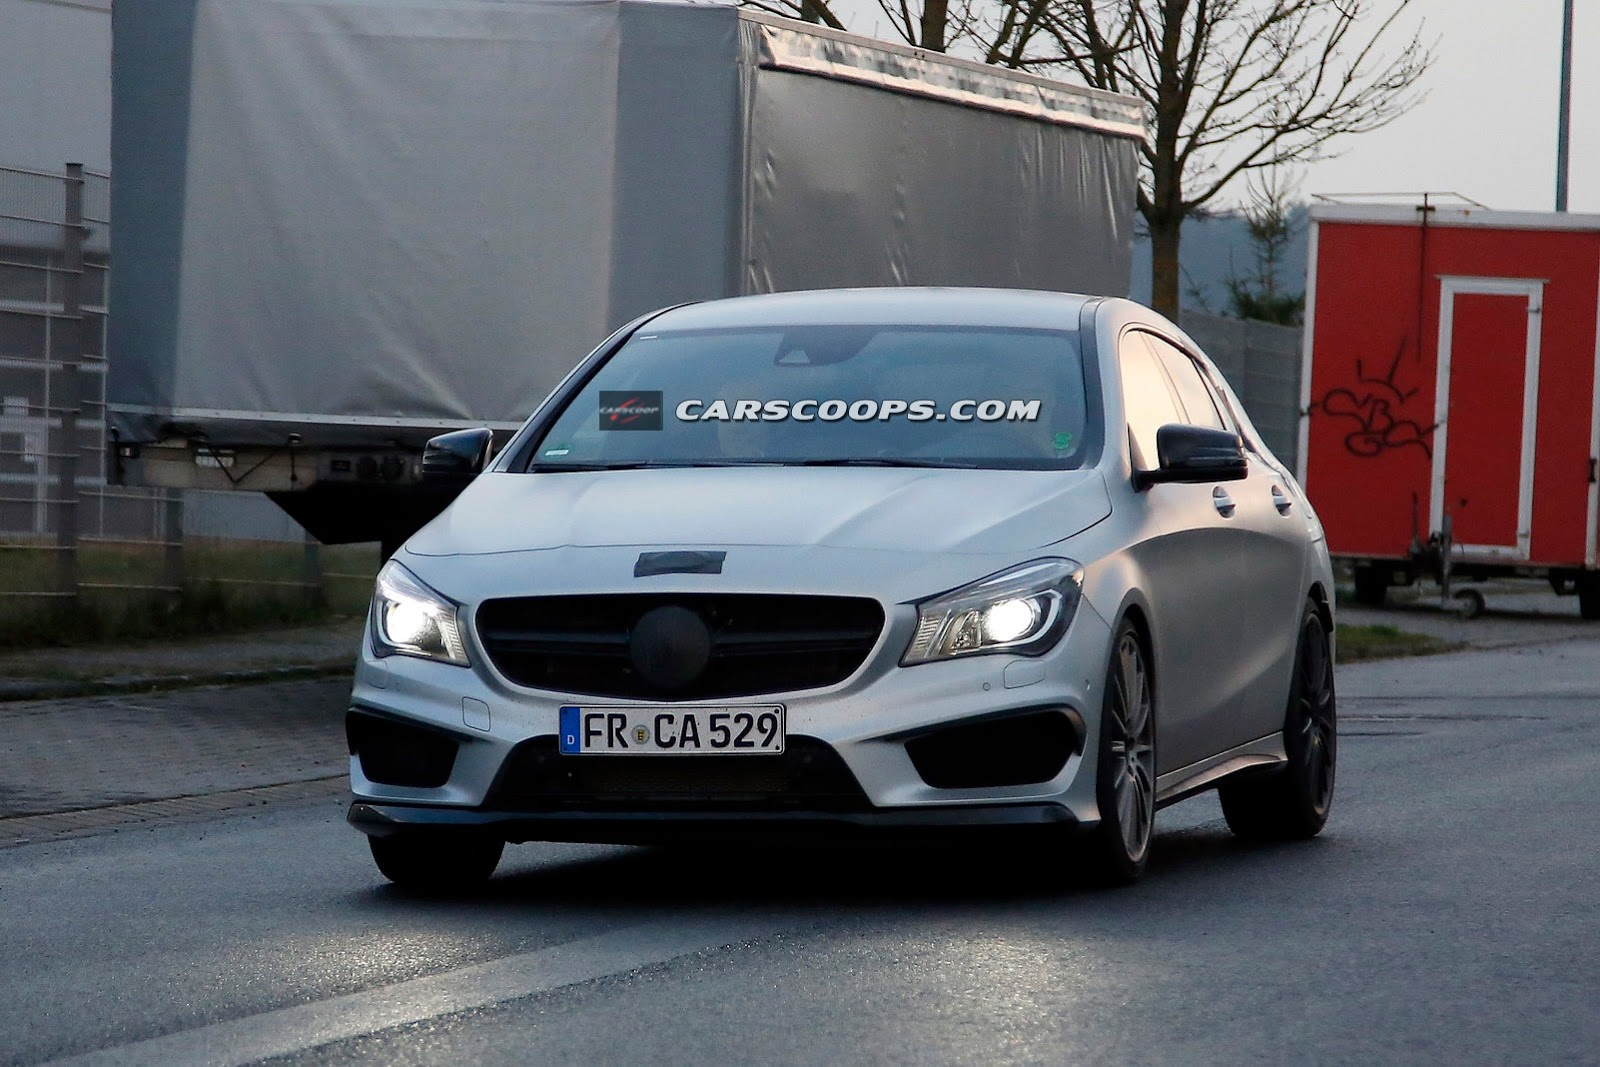 mercedes cla 45 amg shooting brake 1 Mercedes CLA 45 AMG Shooting Brake Spy Photos are Out